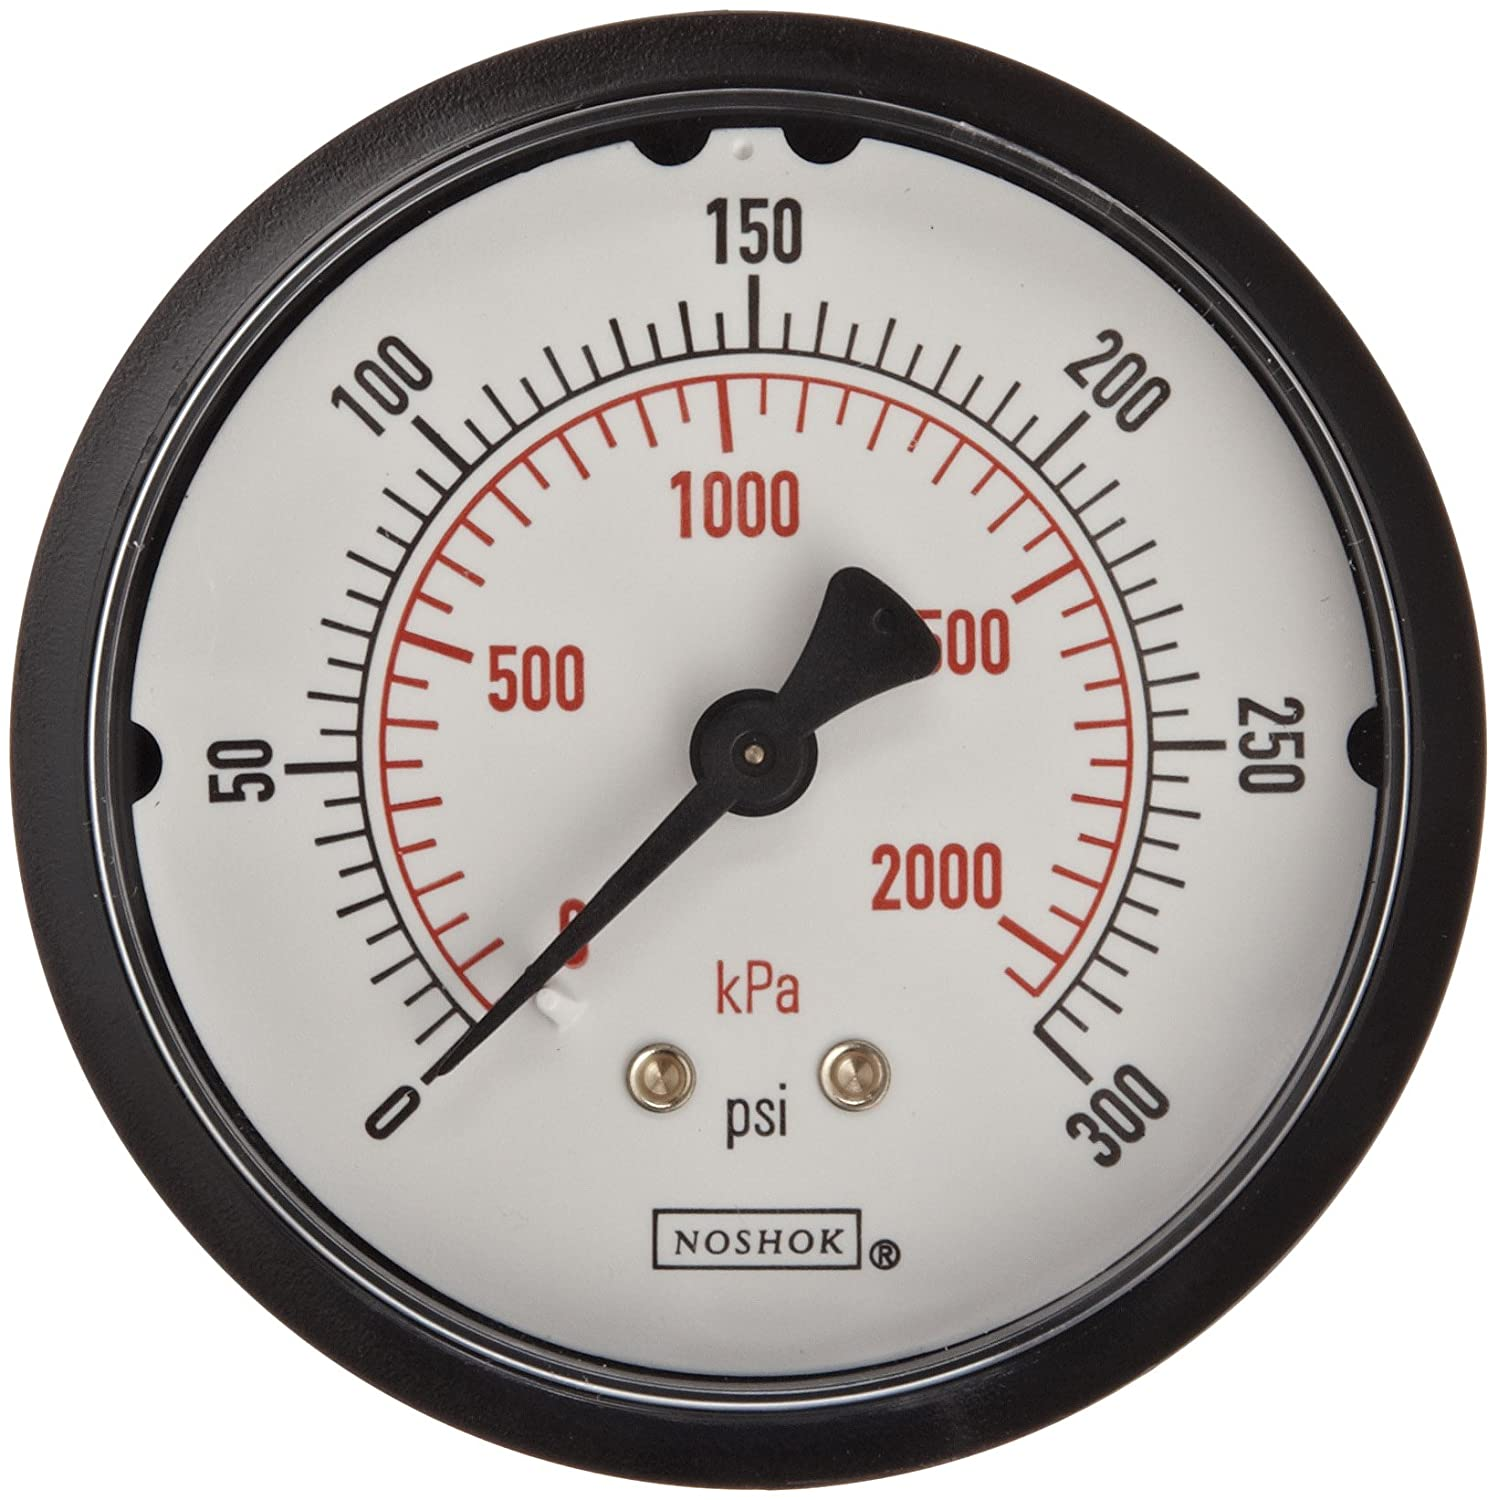 """NOSHOK 100 Series ABS Dual Scale Dial Indicating Pressure Gauge with Back Mount, 2-1/2"""" Dial, +/-2.5% Accuracy, 0-300 psi Pressure Range"""